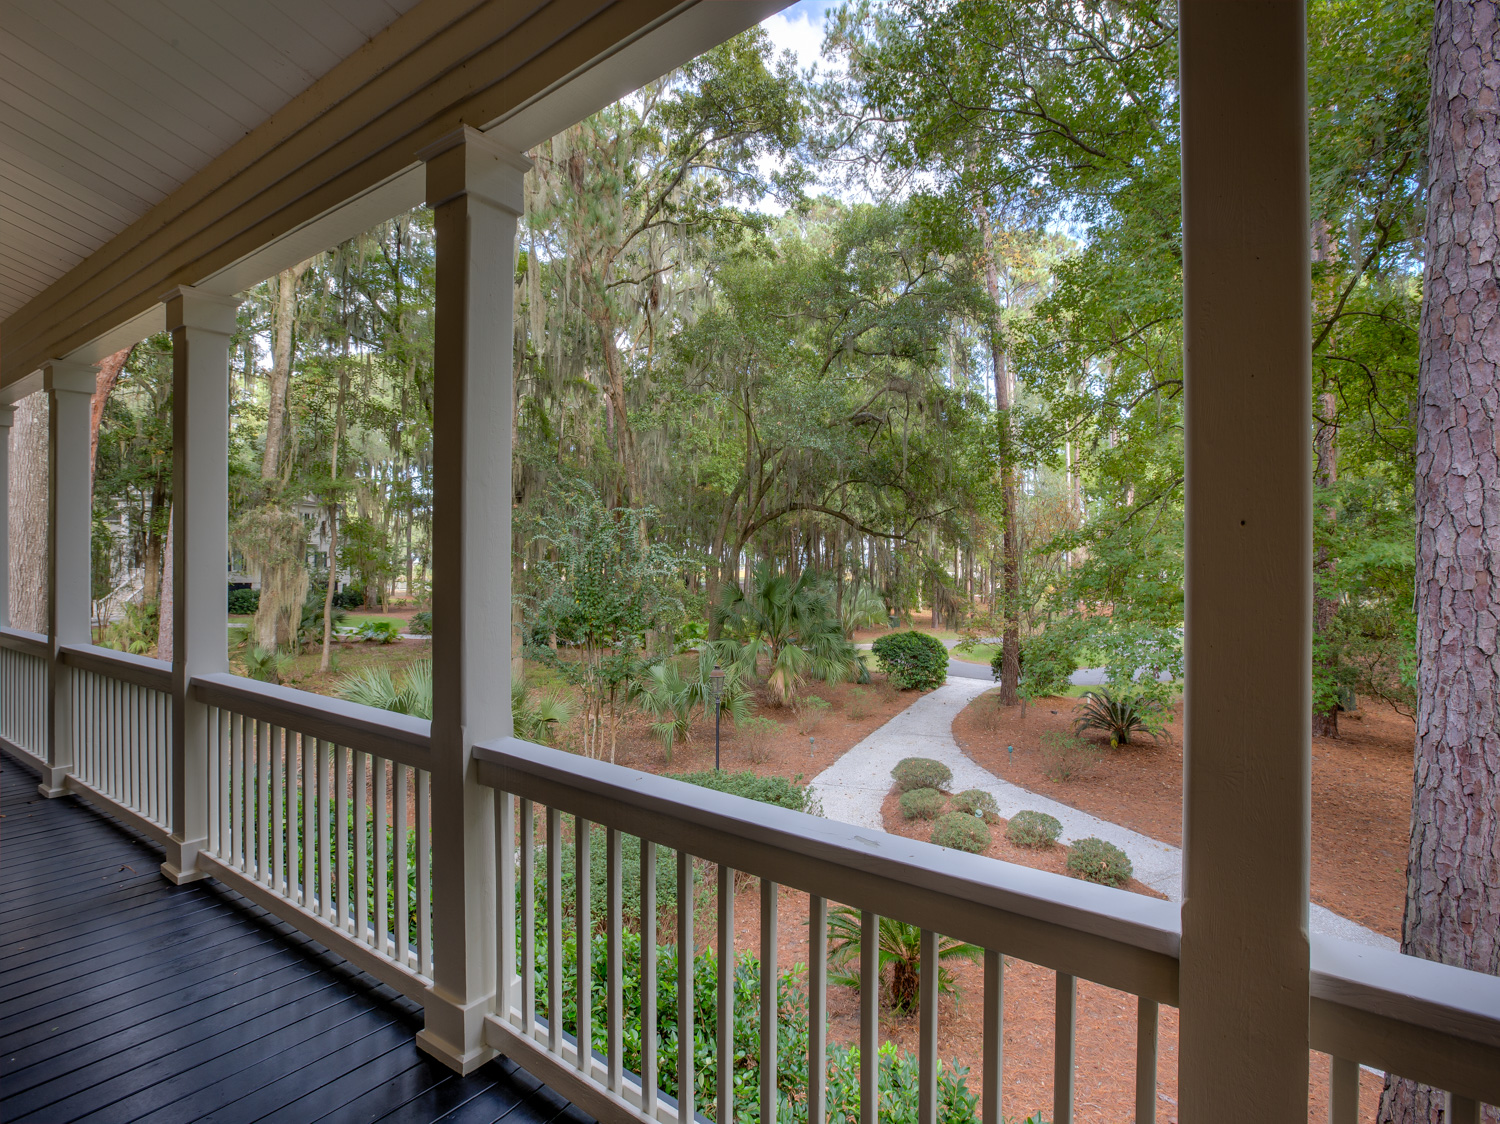 046 front-porch-PS1.jpg